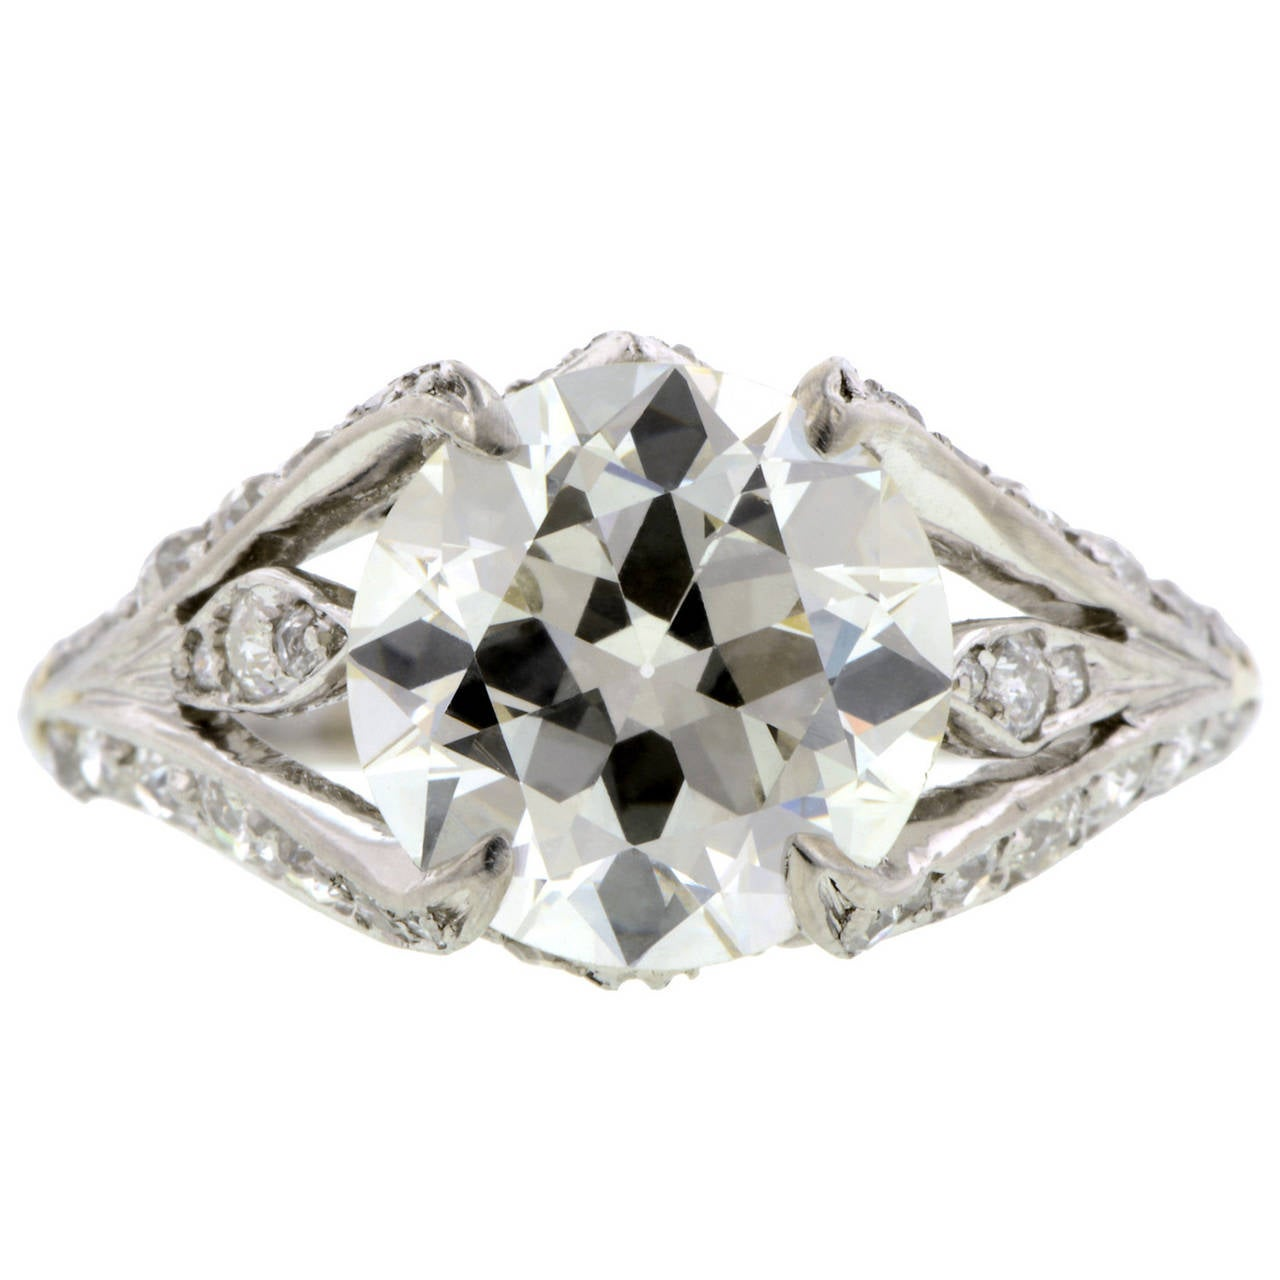 3 00 Carat Diamond Platinum Flamelike Motif Engagement Ring For Sale at 1stdibs